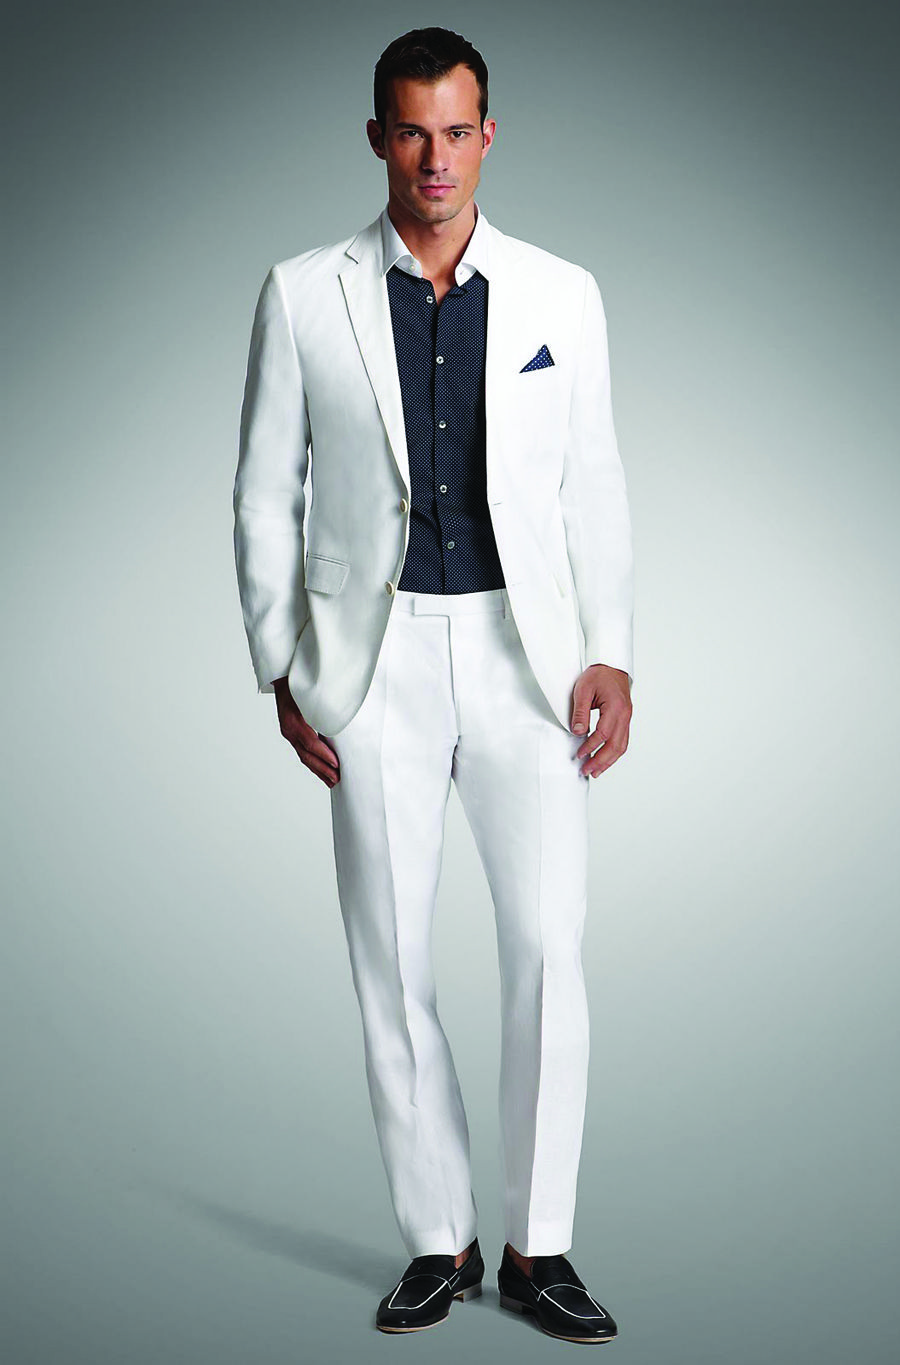 shorts suits for men | Mode Suite – White Suit $410 www.modasuite ...